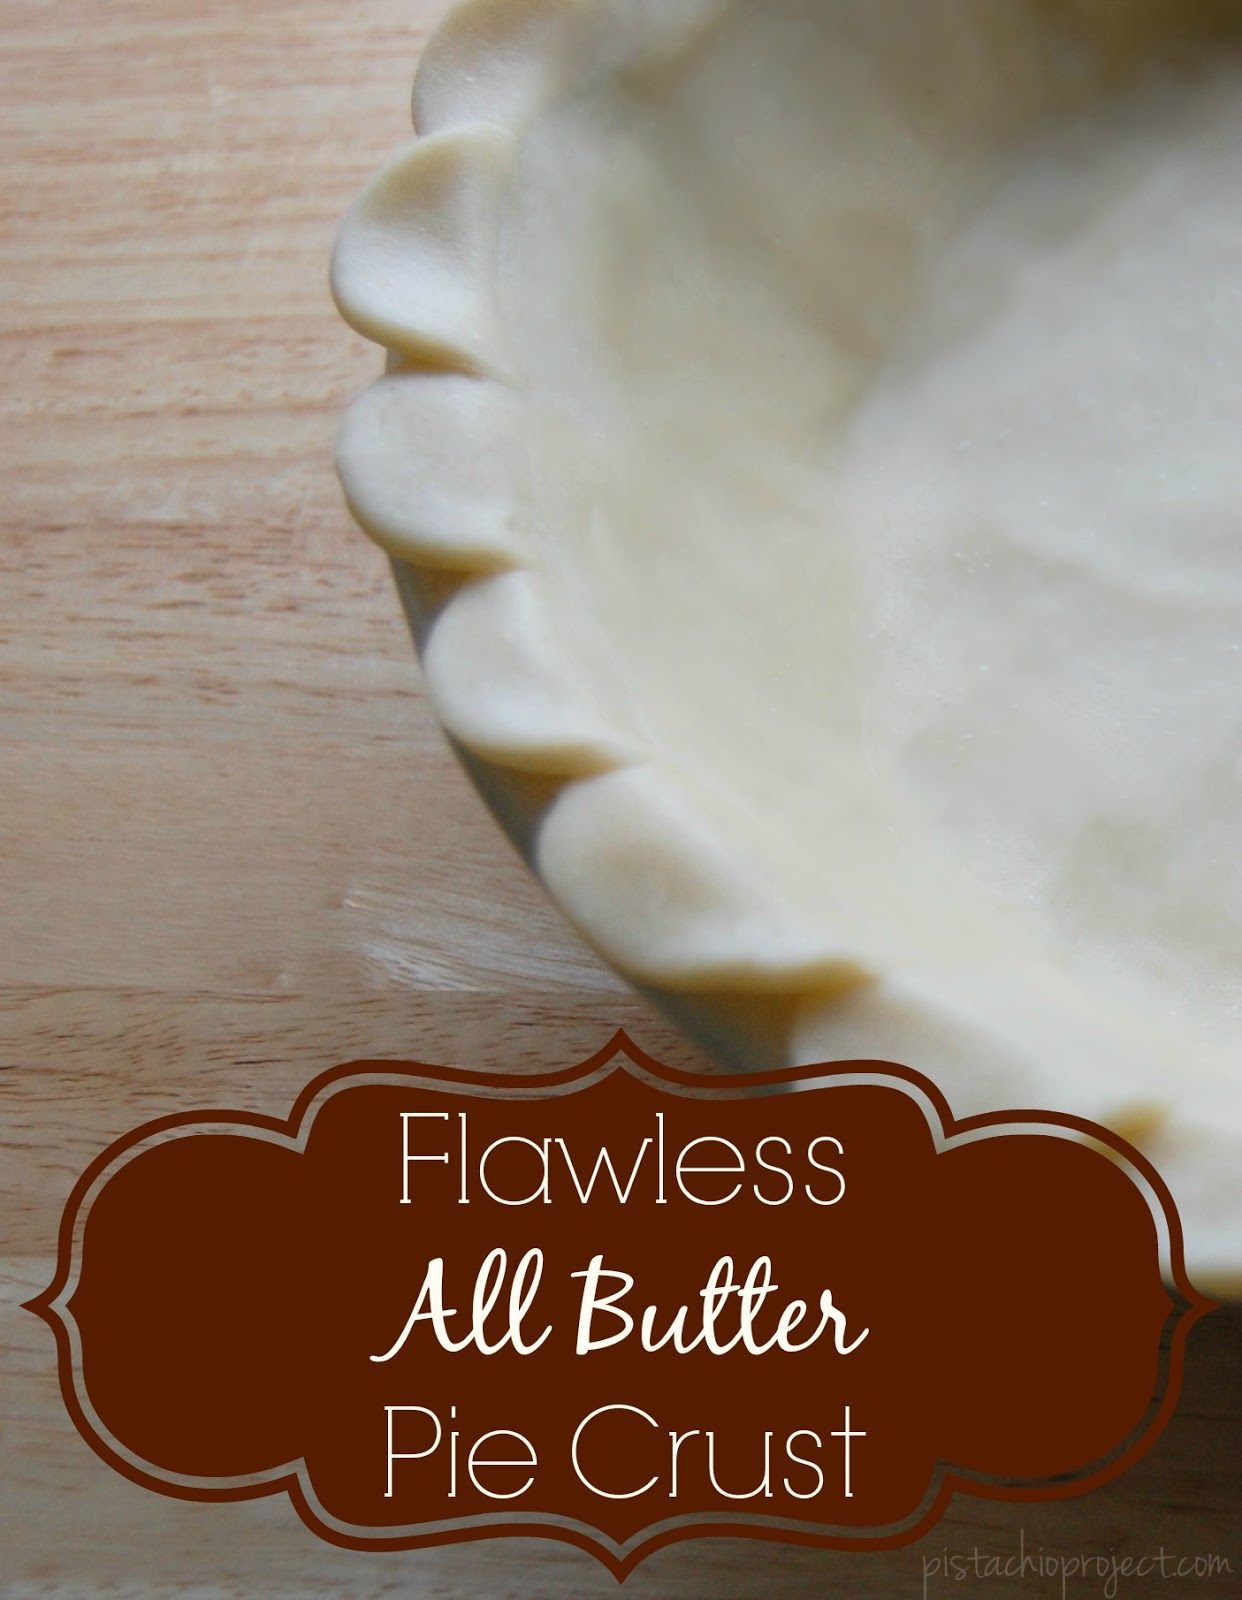 Just 4 wholesome, real food ingredients is all it takes to make this flawless all butter pie crust! Perfect for pies and quiches! #piecrust #pie #easy #realfood #natural #fromscratch